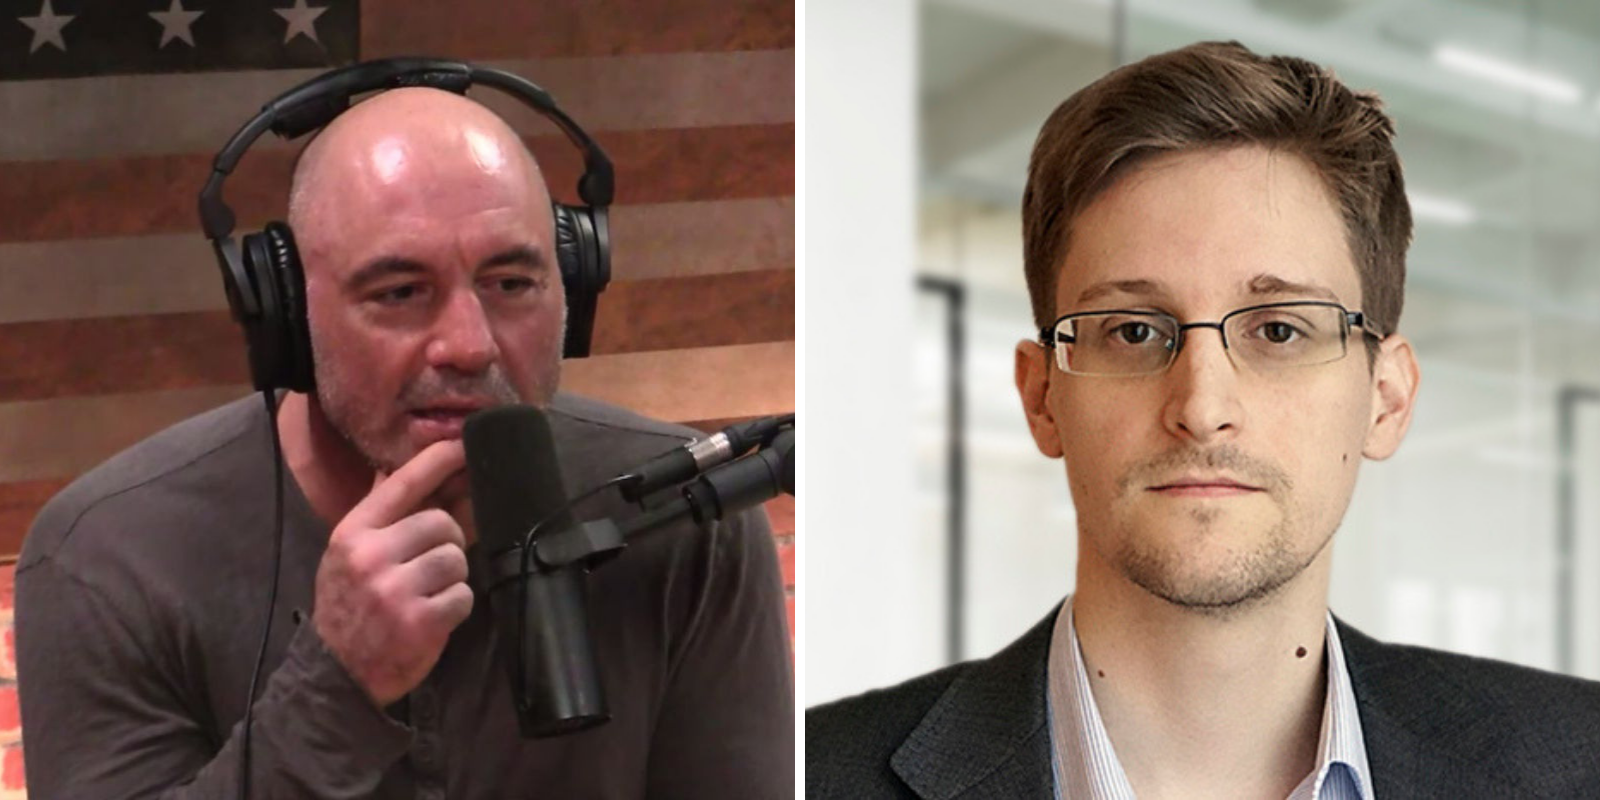 Edward Snowden on Joe Rogan podcast reminds us that privacy is gone